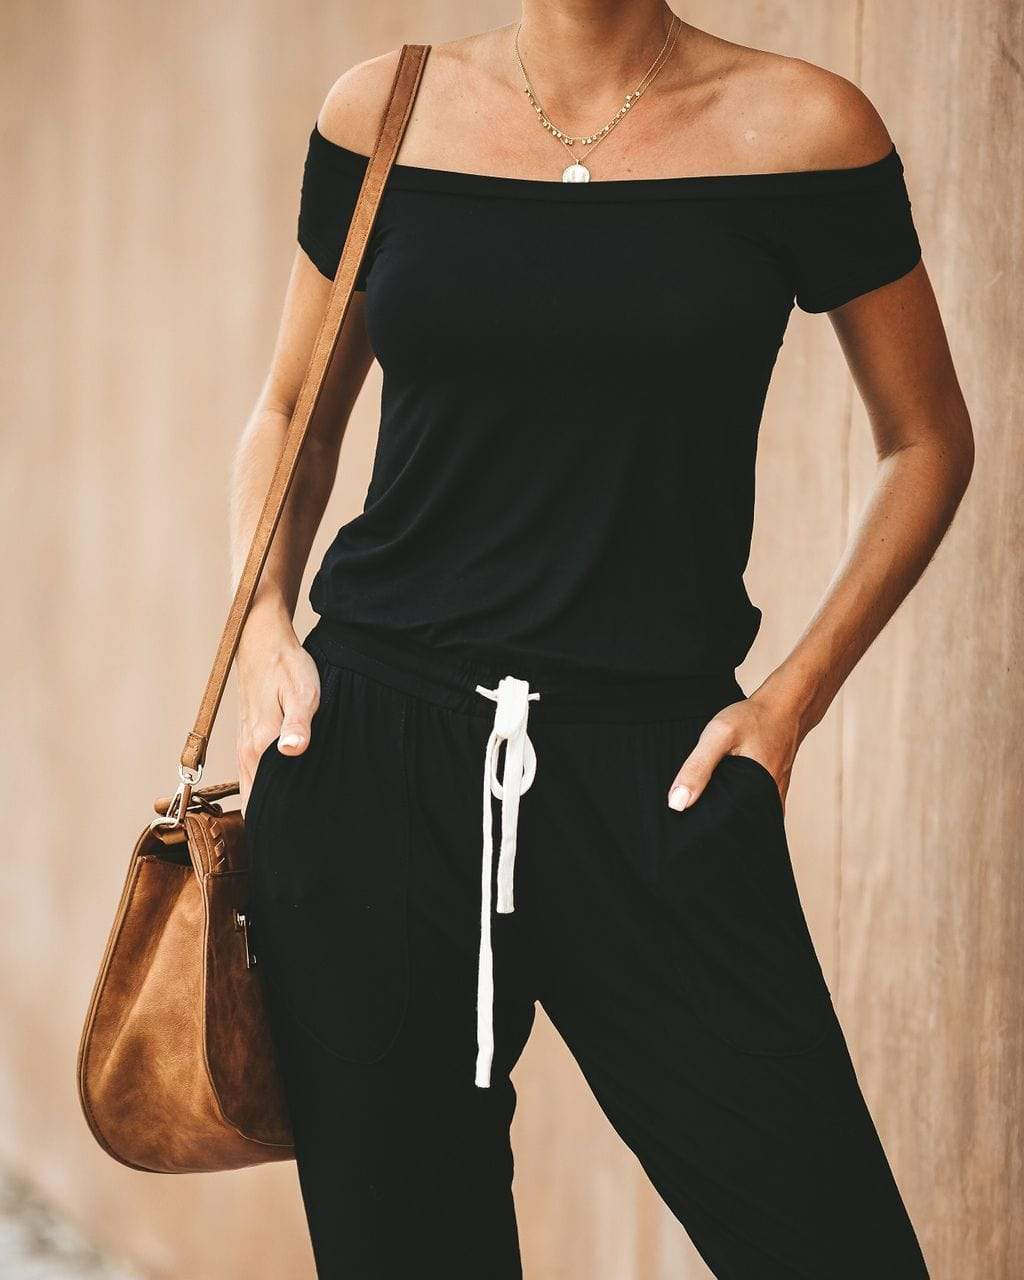 instylestreet.com Pants Black / S Drawstring Boat Neck Jumpsuit With Pocketed